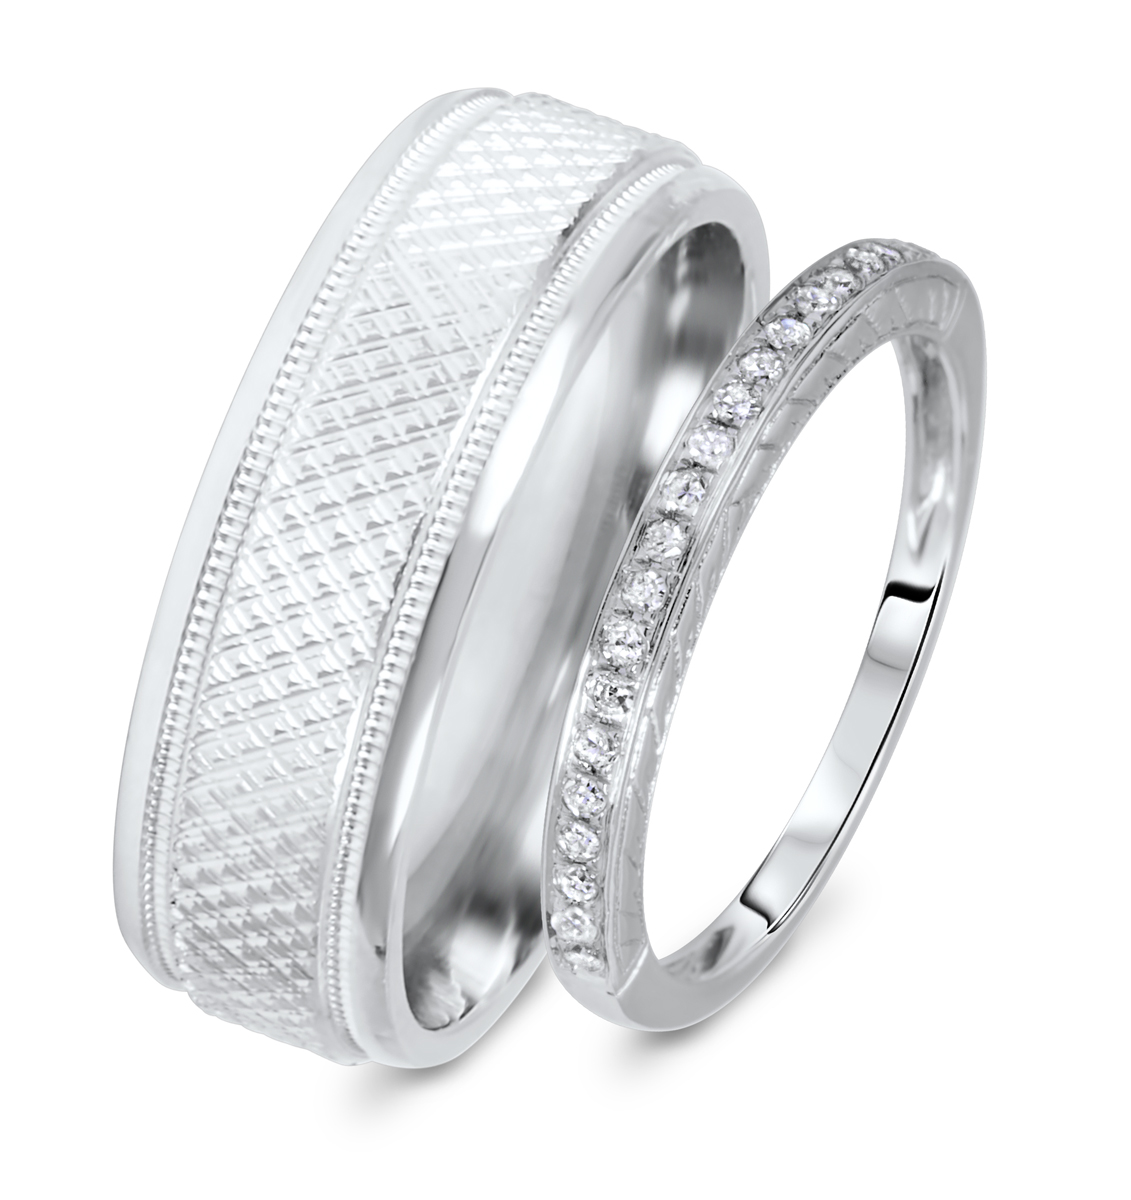 18 Carat TW Rounds Cut Diamond His And Hers Wedding Band Set 14K